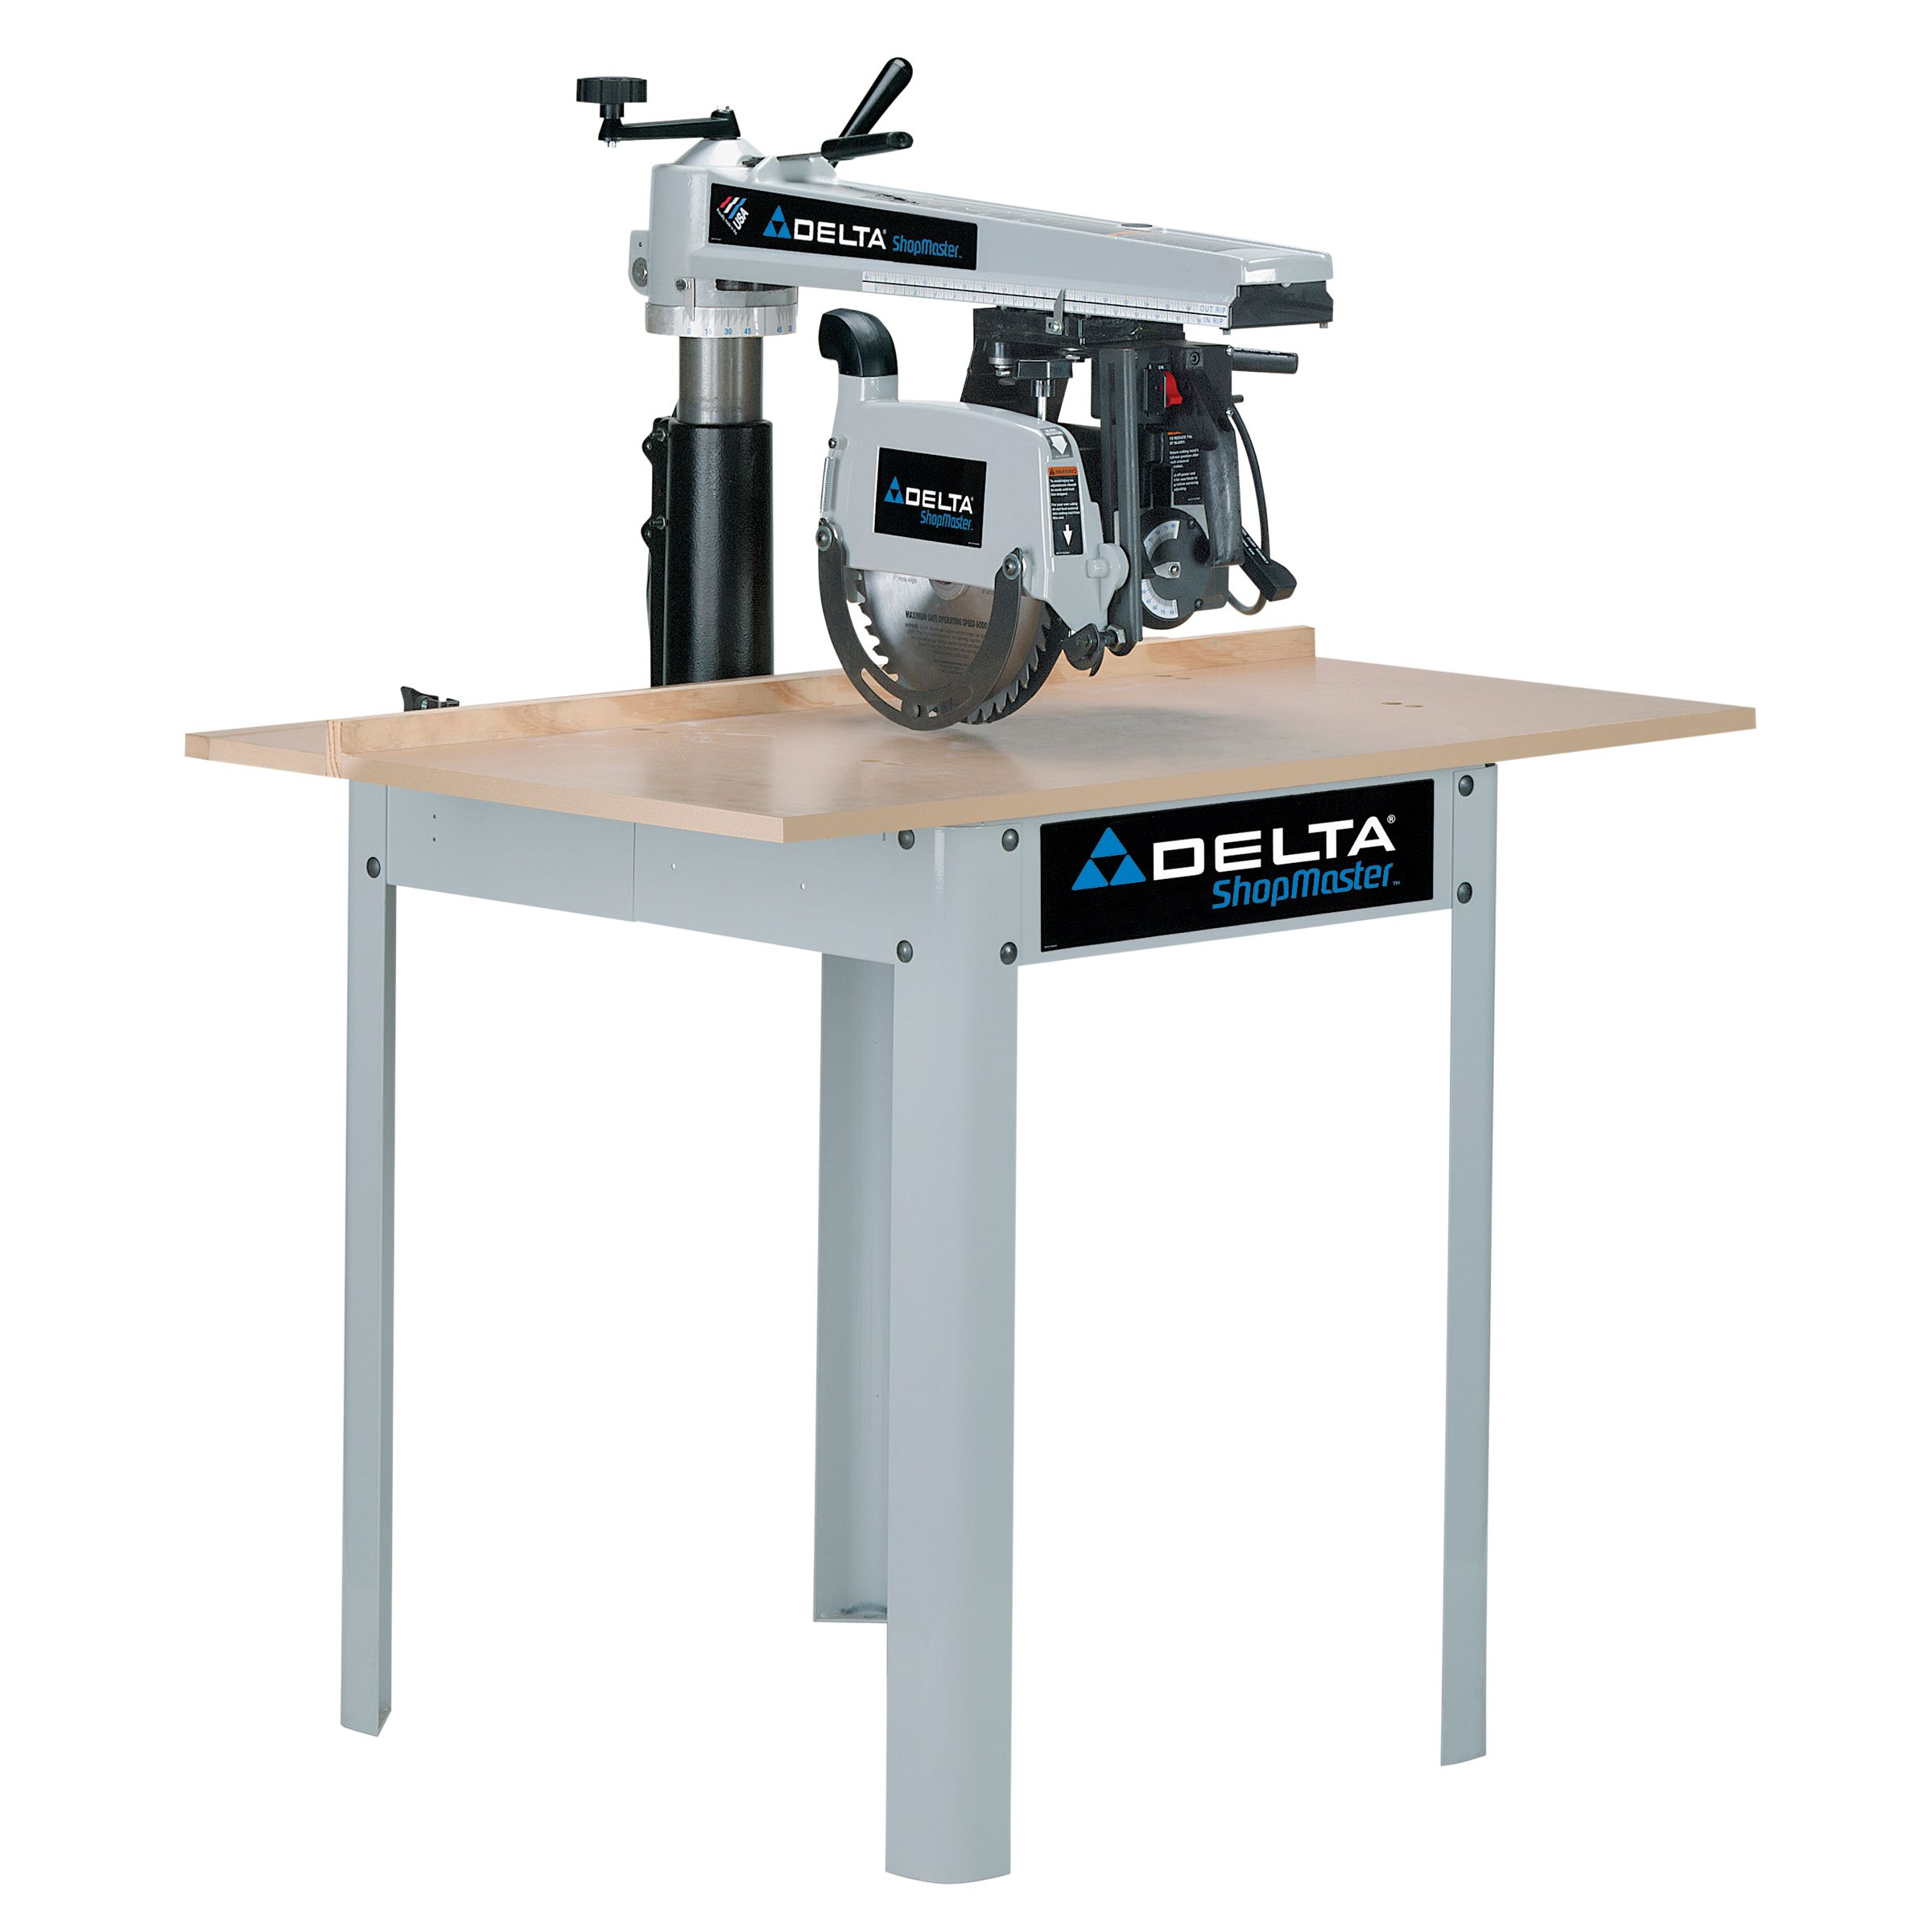 Delta Tools 10 In Professional Radial Arm Saw Tools